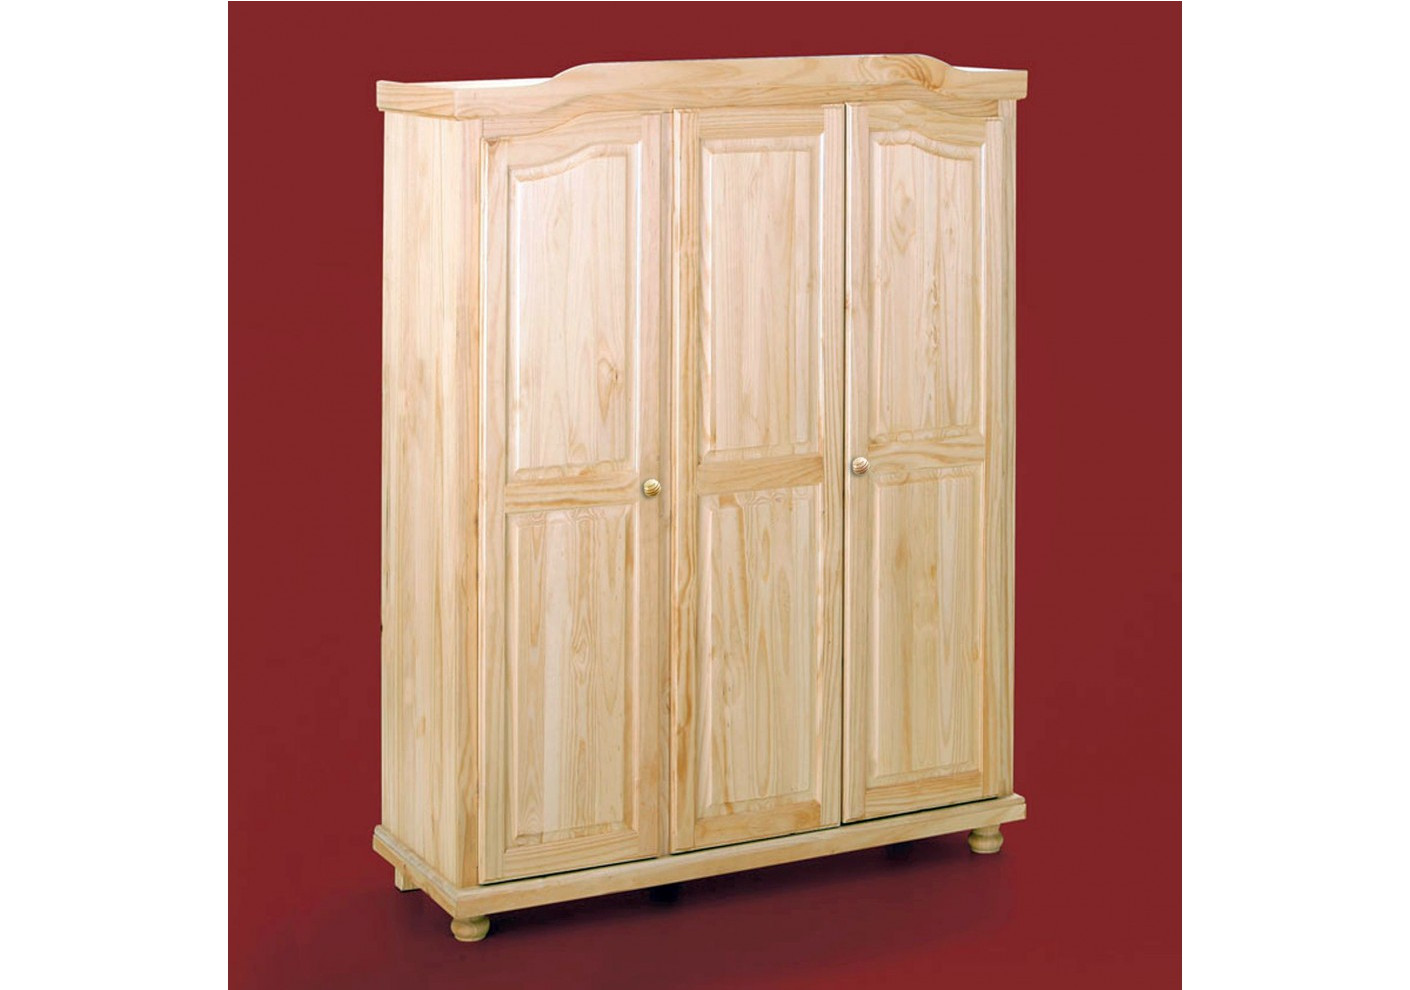 armoire paris pin massif 3 portes vernis naturel. Black Bedroom Furniture Sets. Home Design Ideas